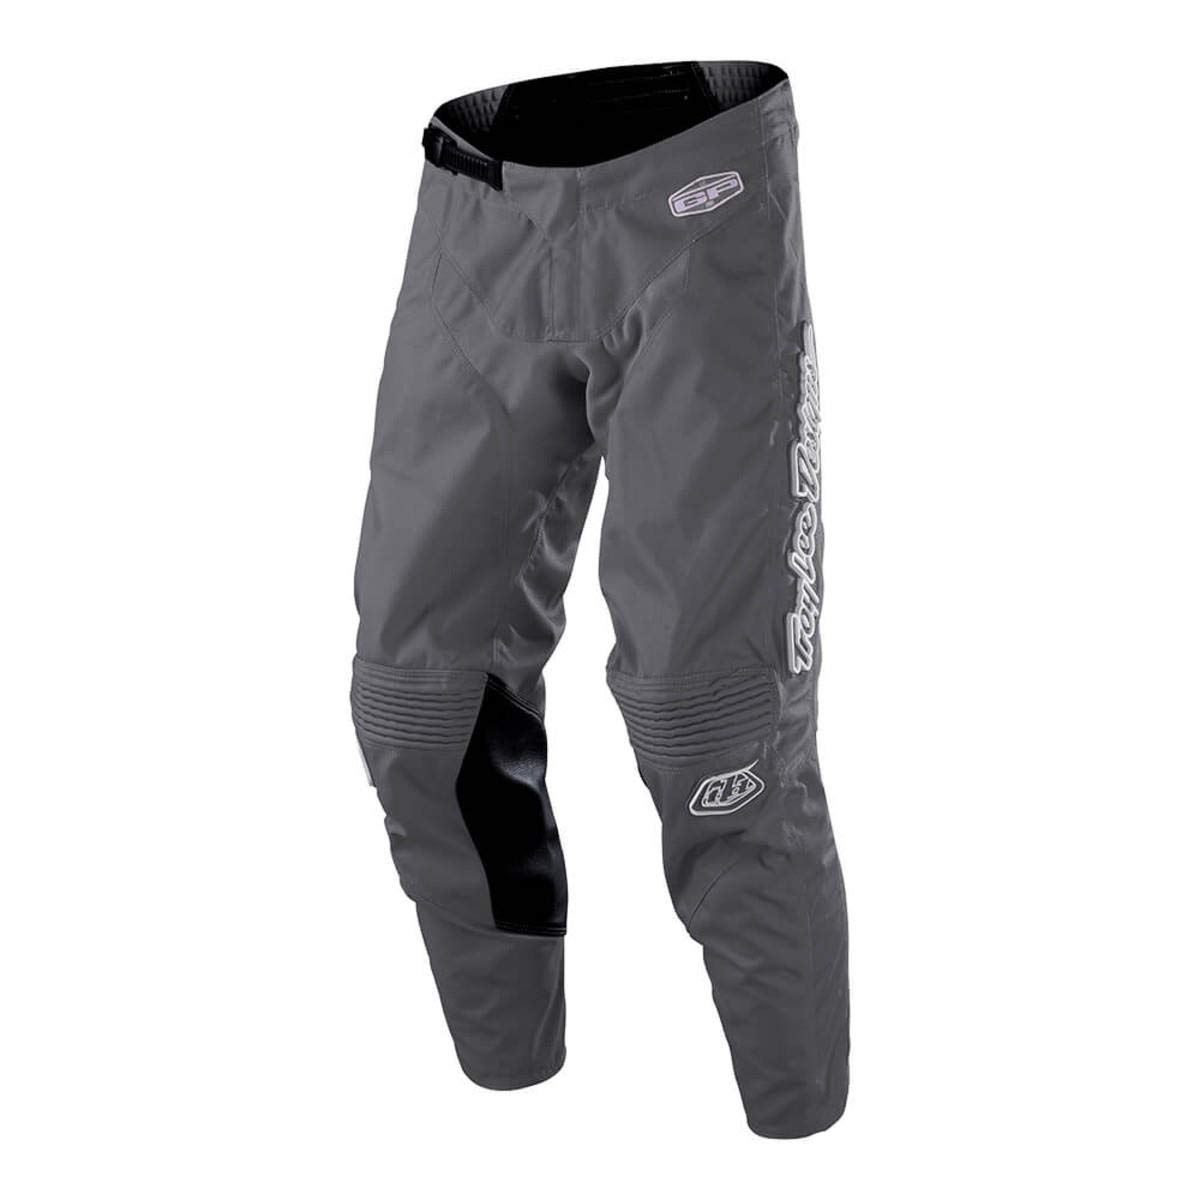 Troy Lee Designs 2018 Bike Moto Shorts Gray Mens All Sizes